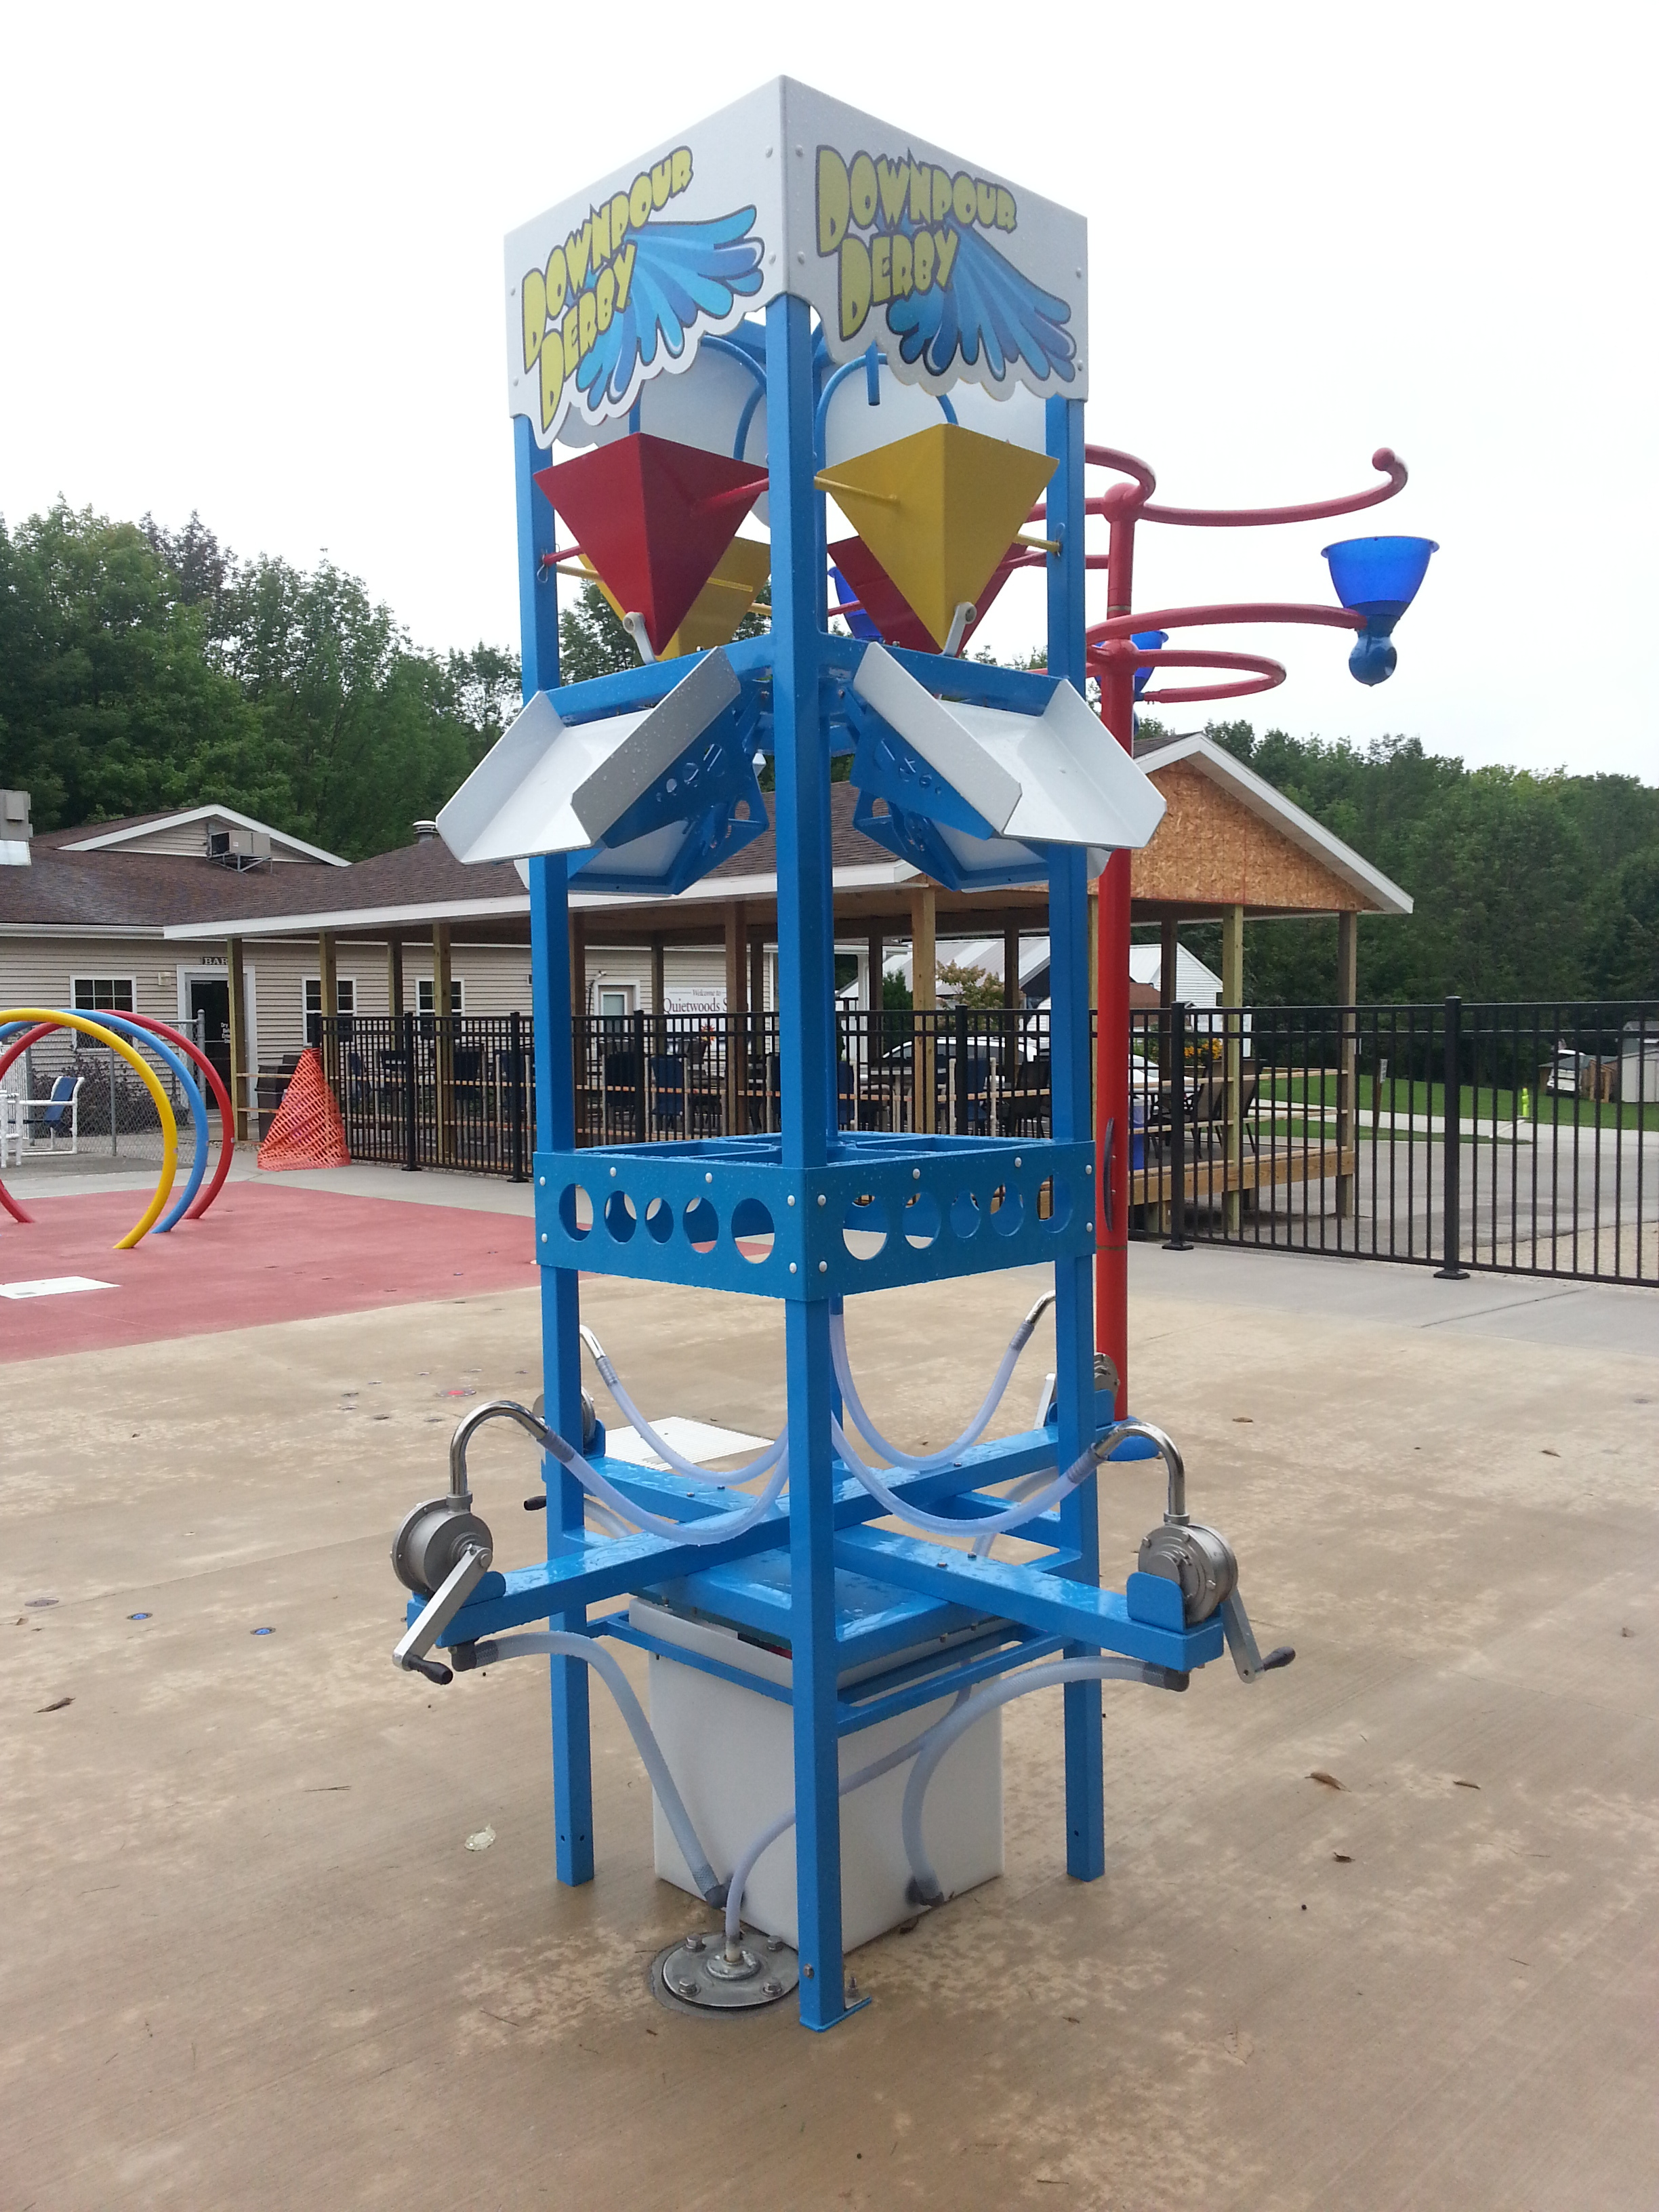 Outdoor plash pad water bucket dropper at Quietwoods South Camping Resort in Brussels, WI